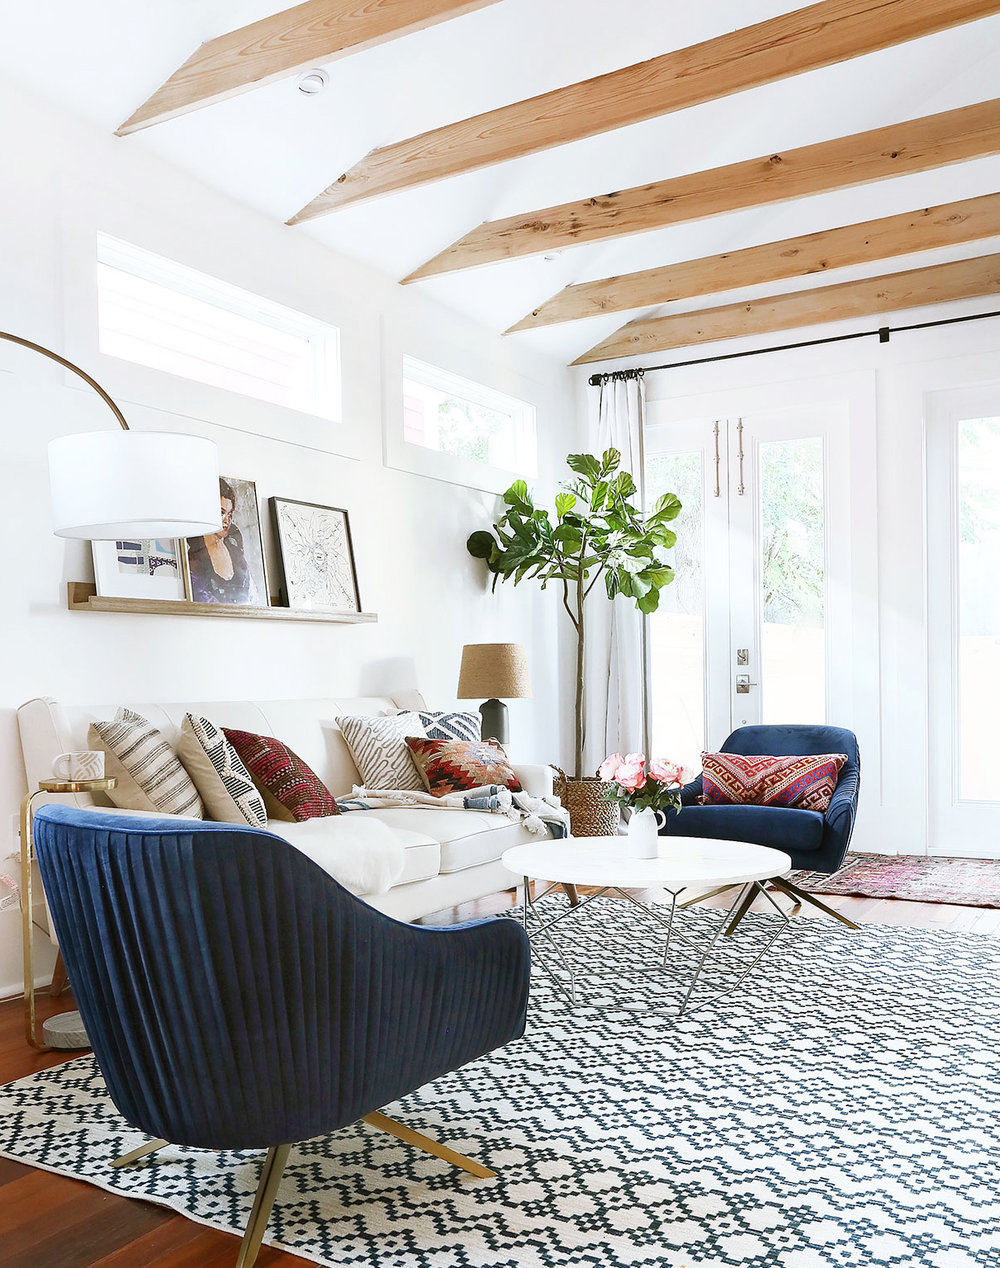 Need help with how to choose a coffee table or ottoman for your living room? I've got you covered! I'll walk you through what you need to think about when you're shopping for one for your home. Plus, I've got a roundup of my favorite coffee tables and ottomans to help you get started in your search. // Modern eclectic living room with blue swivel chairs and a round coffee table.